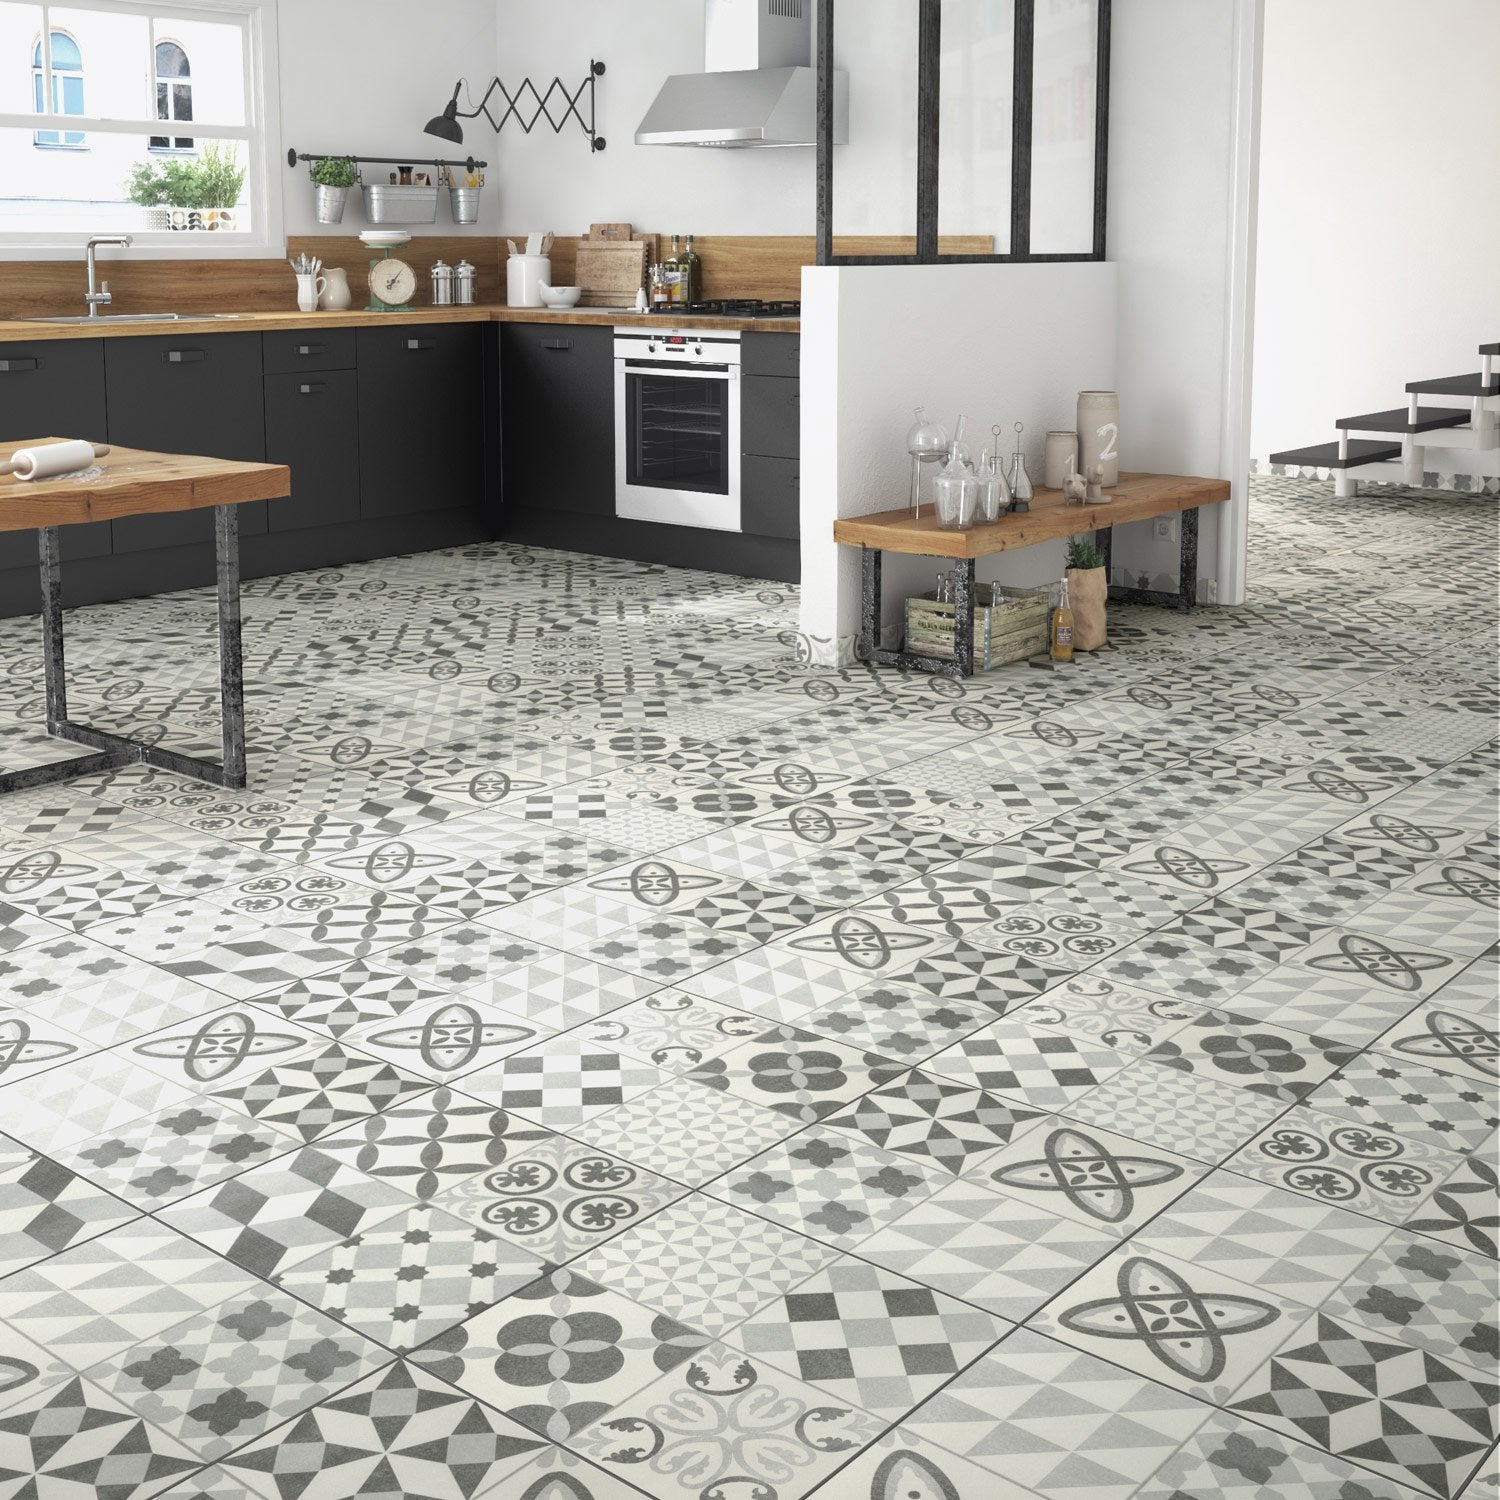 Carrelage leroy merlin gris maison design for Carrelage ciment